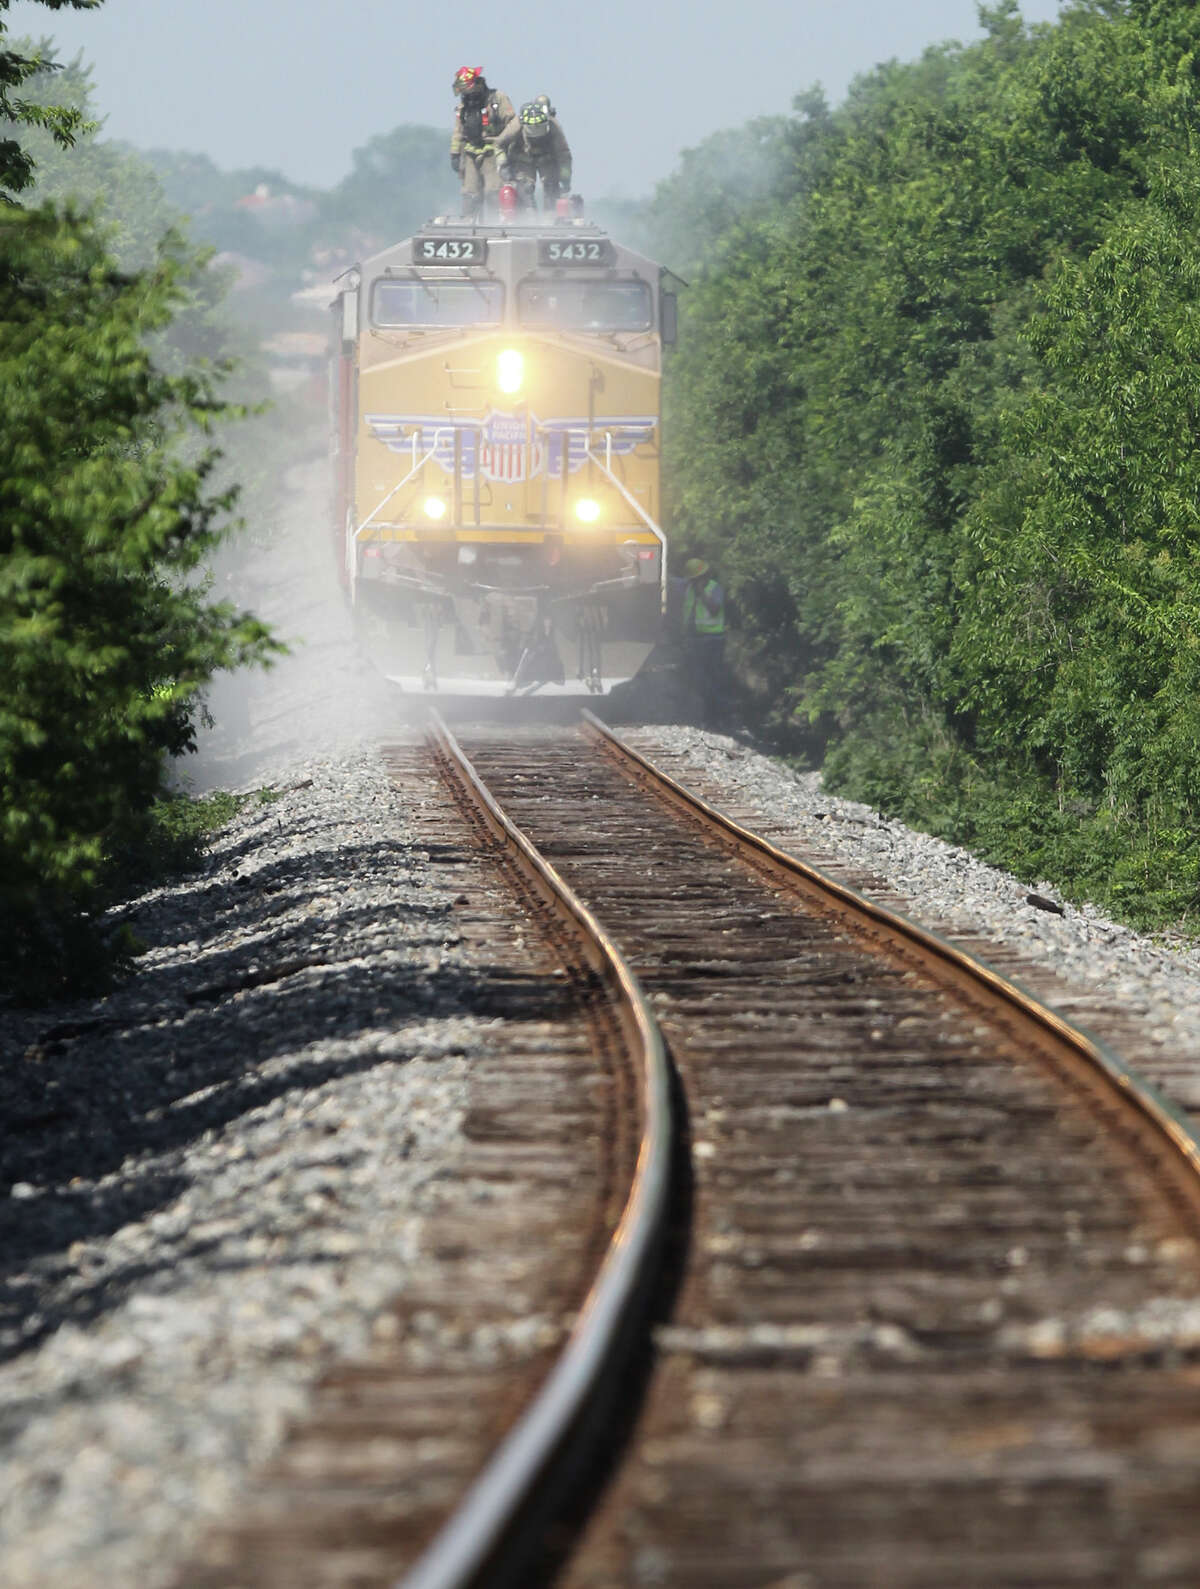 A Union Pacific freight train runs near Interstate 35 on a line the Lone Star Rail District had hoped to use for passenger trains. UP pulled out of an agreement to study that possibility, a blow to the district's plans to build a passenger rail line known as LSTAR between San Antonio and Georgetown, north of Austin.